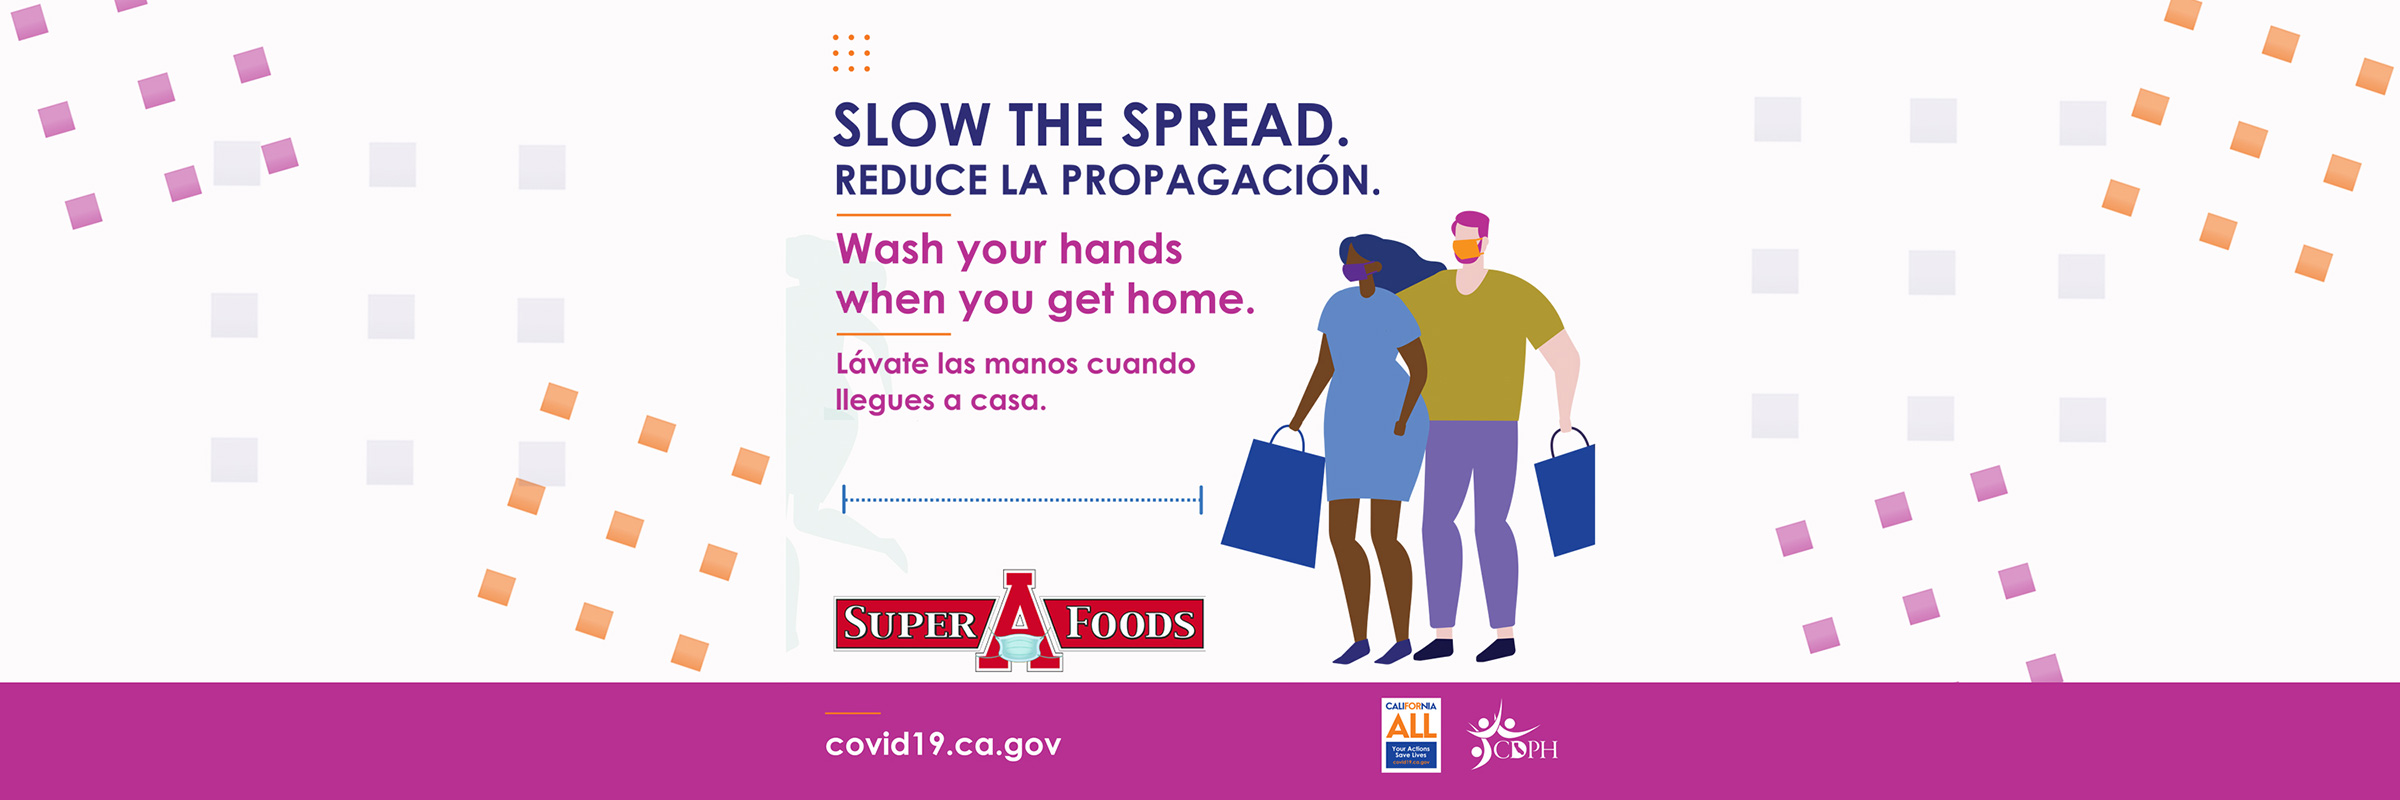 Slow The Spread By Washing Your Hands